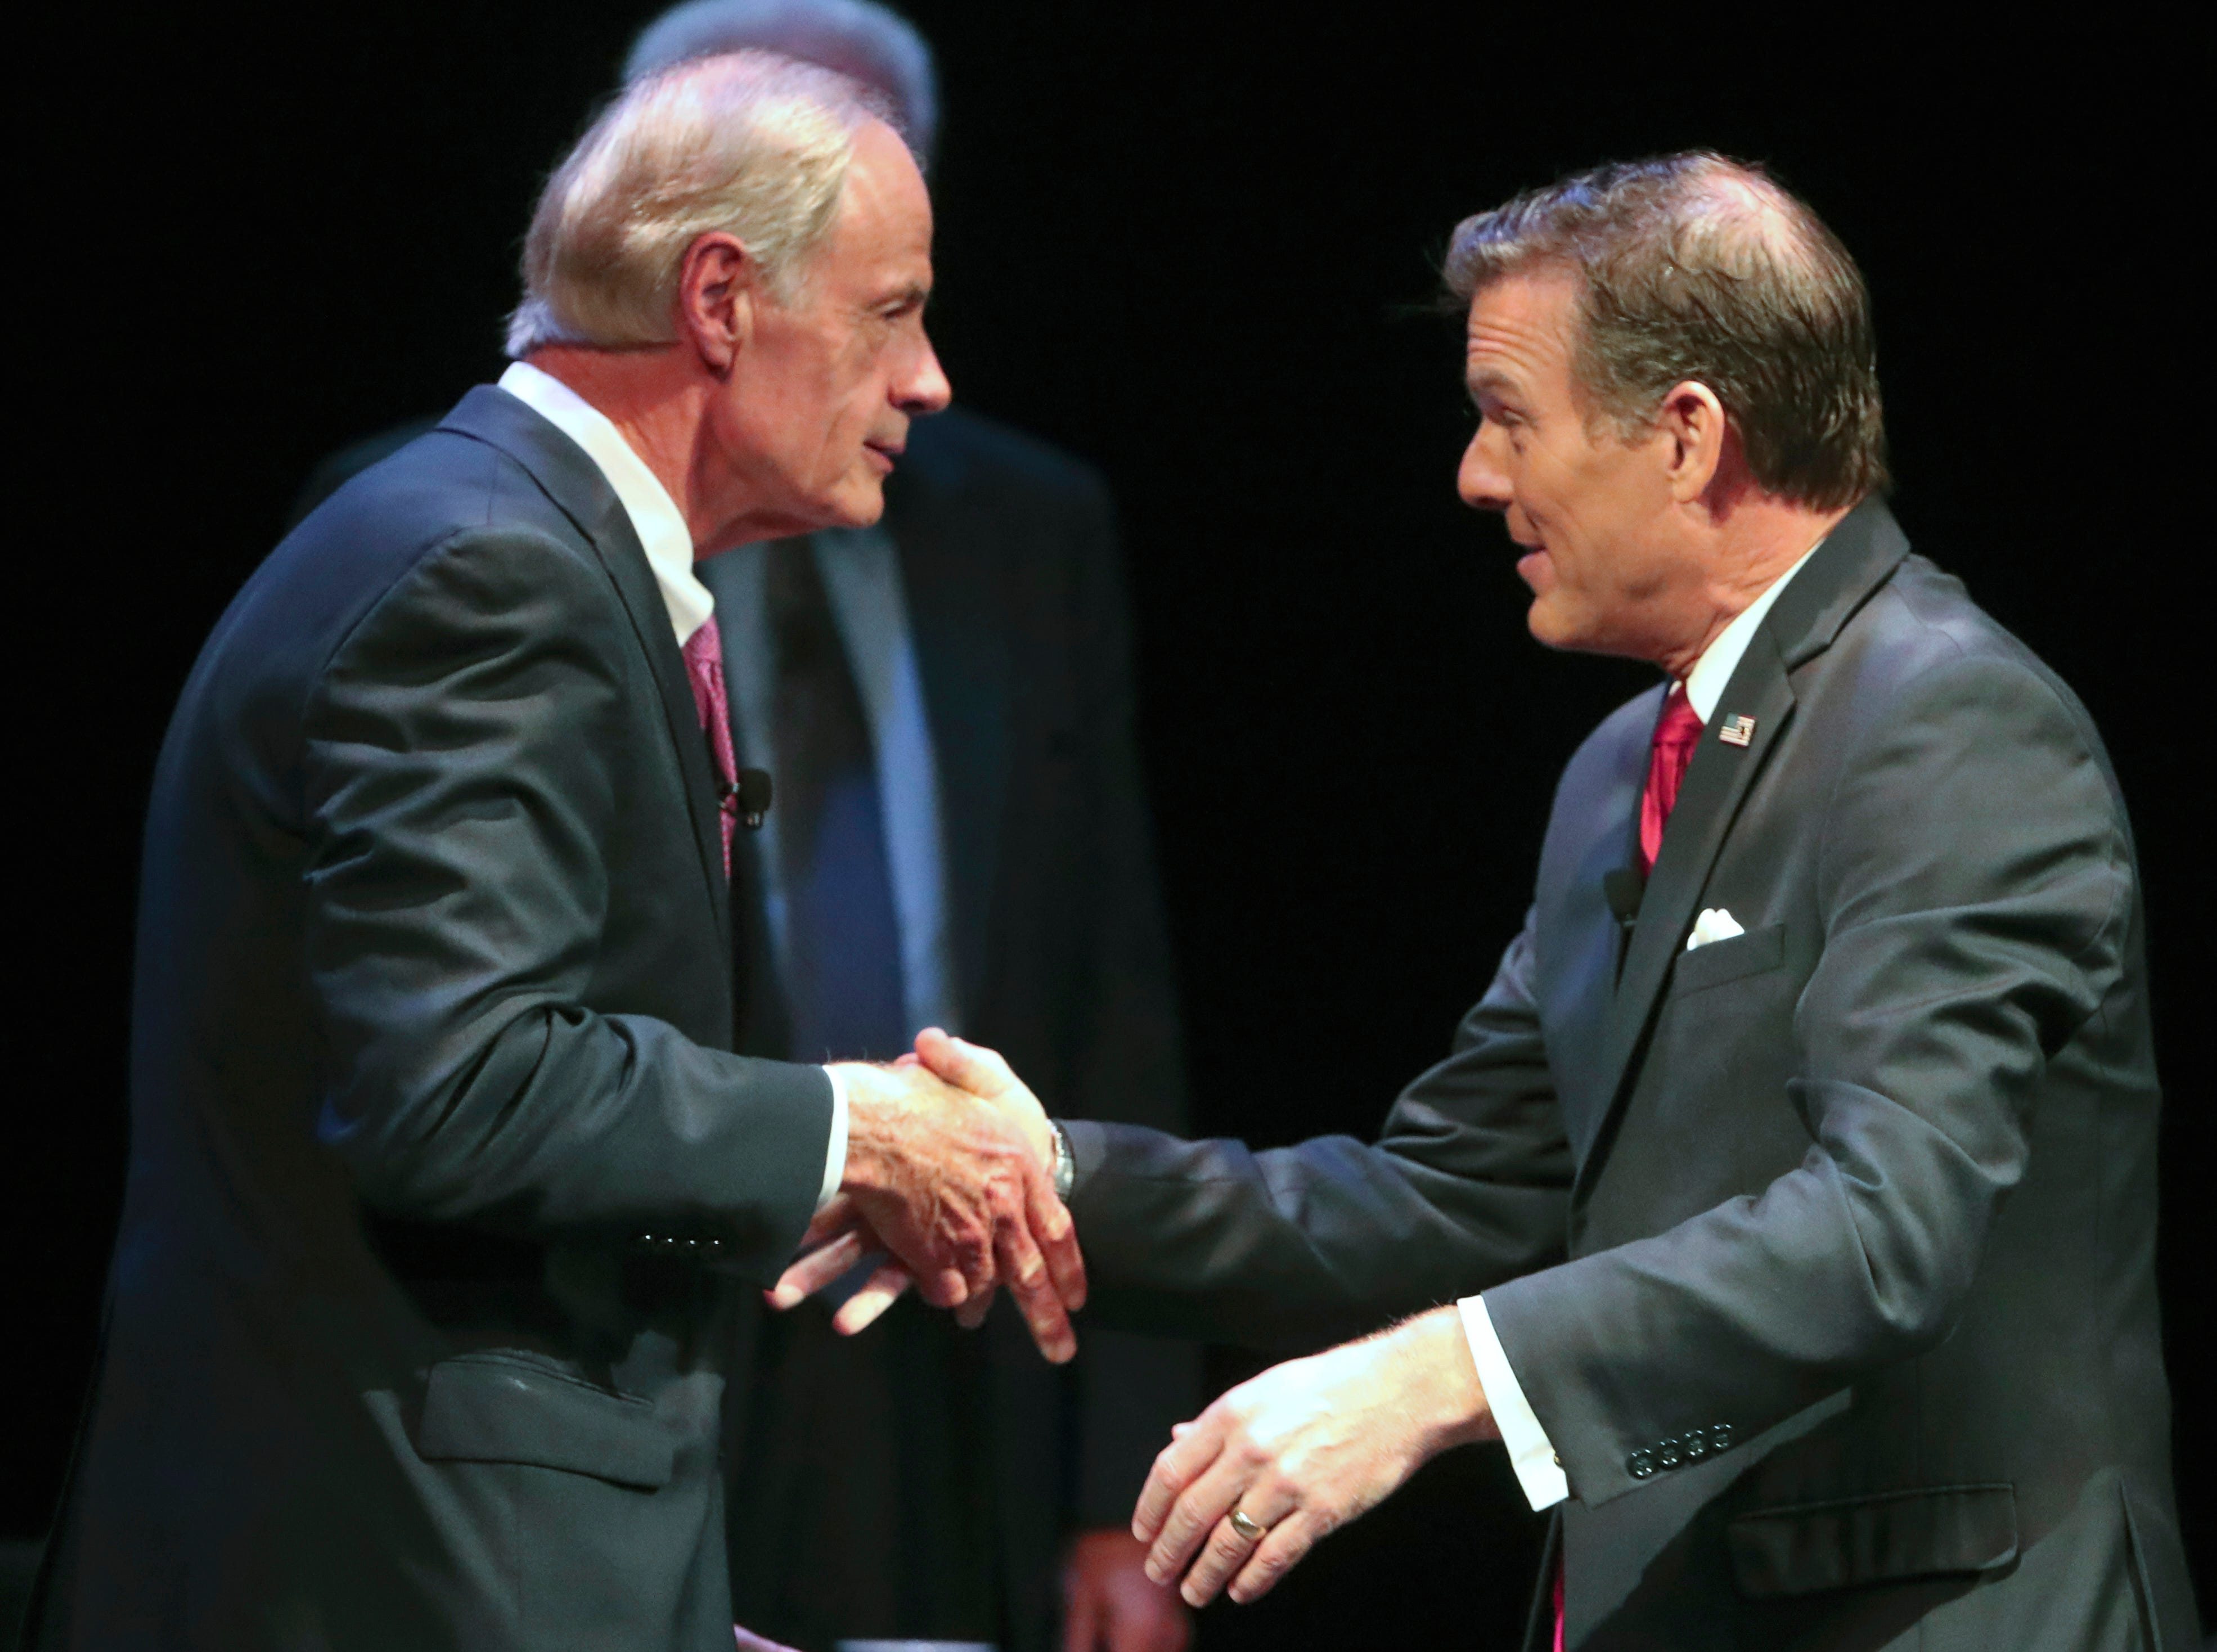 US Senate candidates from Delaware Democrat incumbent Tom Carper (left) and Republican challenger Rob Arlett meet before a debate at the University of Delaware's Mitchell Hall Wednesday.